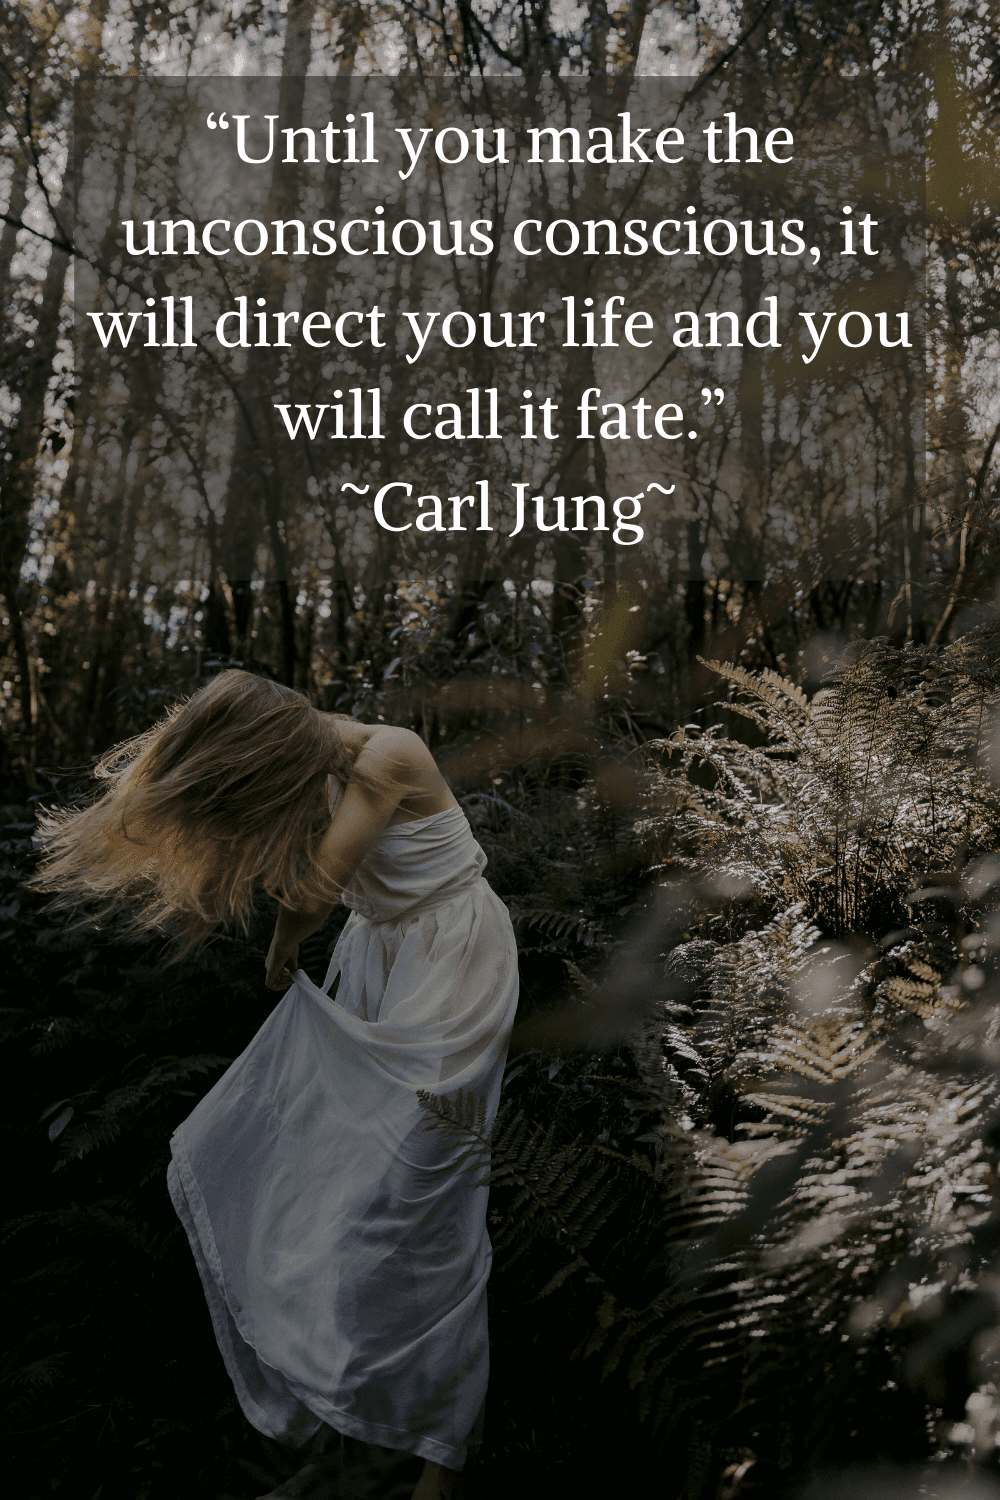 """""""Until you make the unconscious conscious, it will direct your life and you will call it fate."""" Carl Jung"""